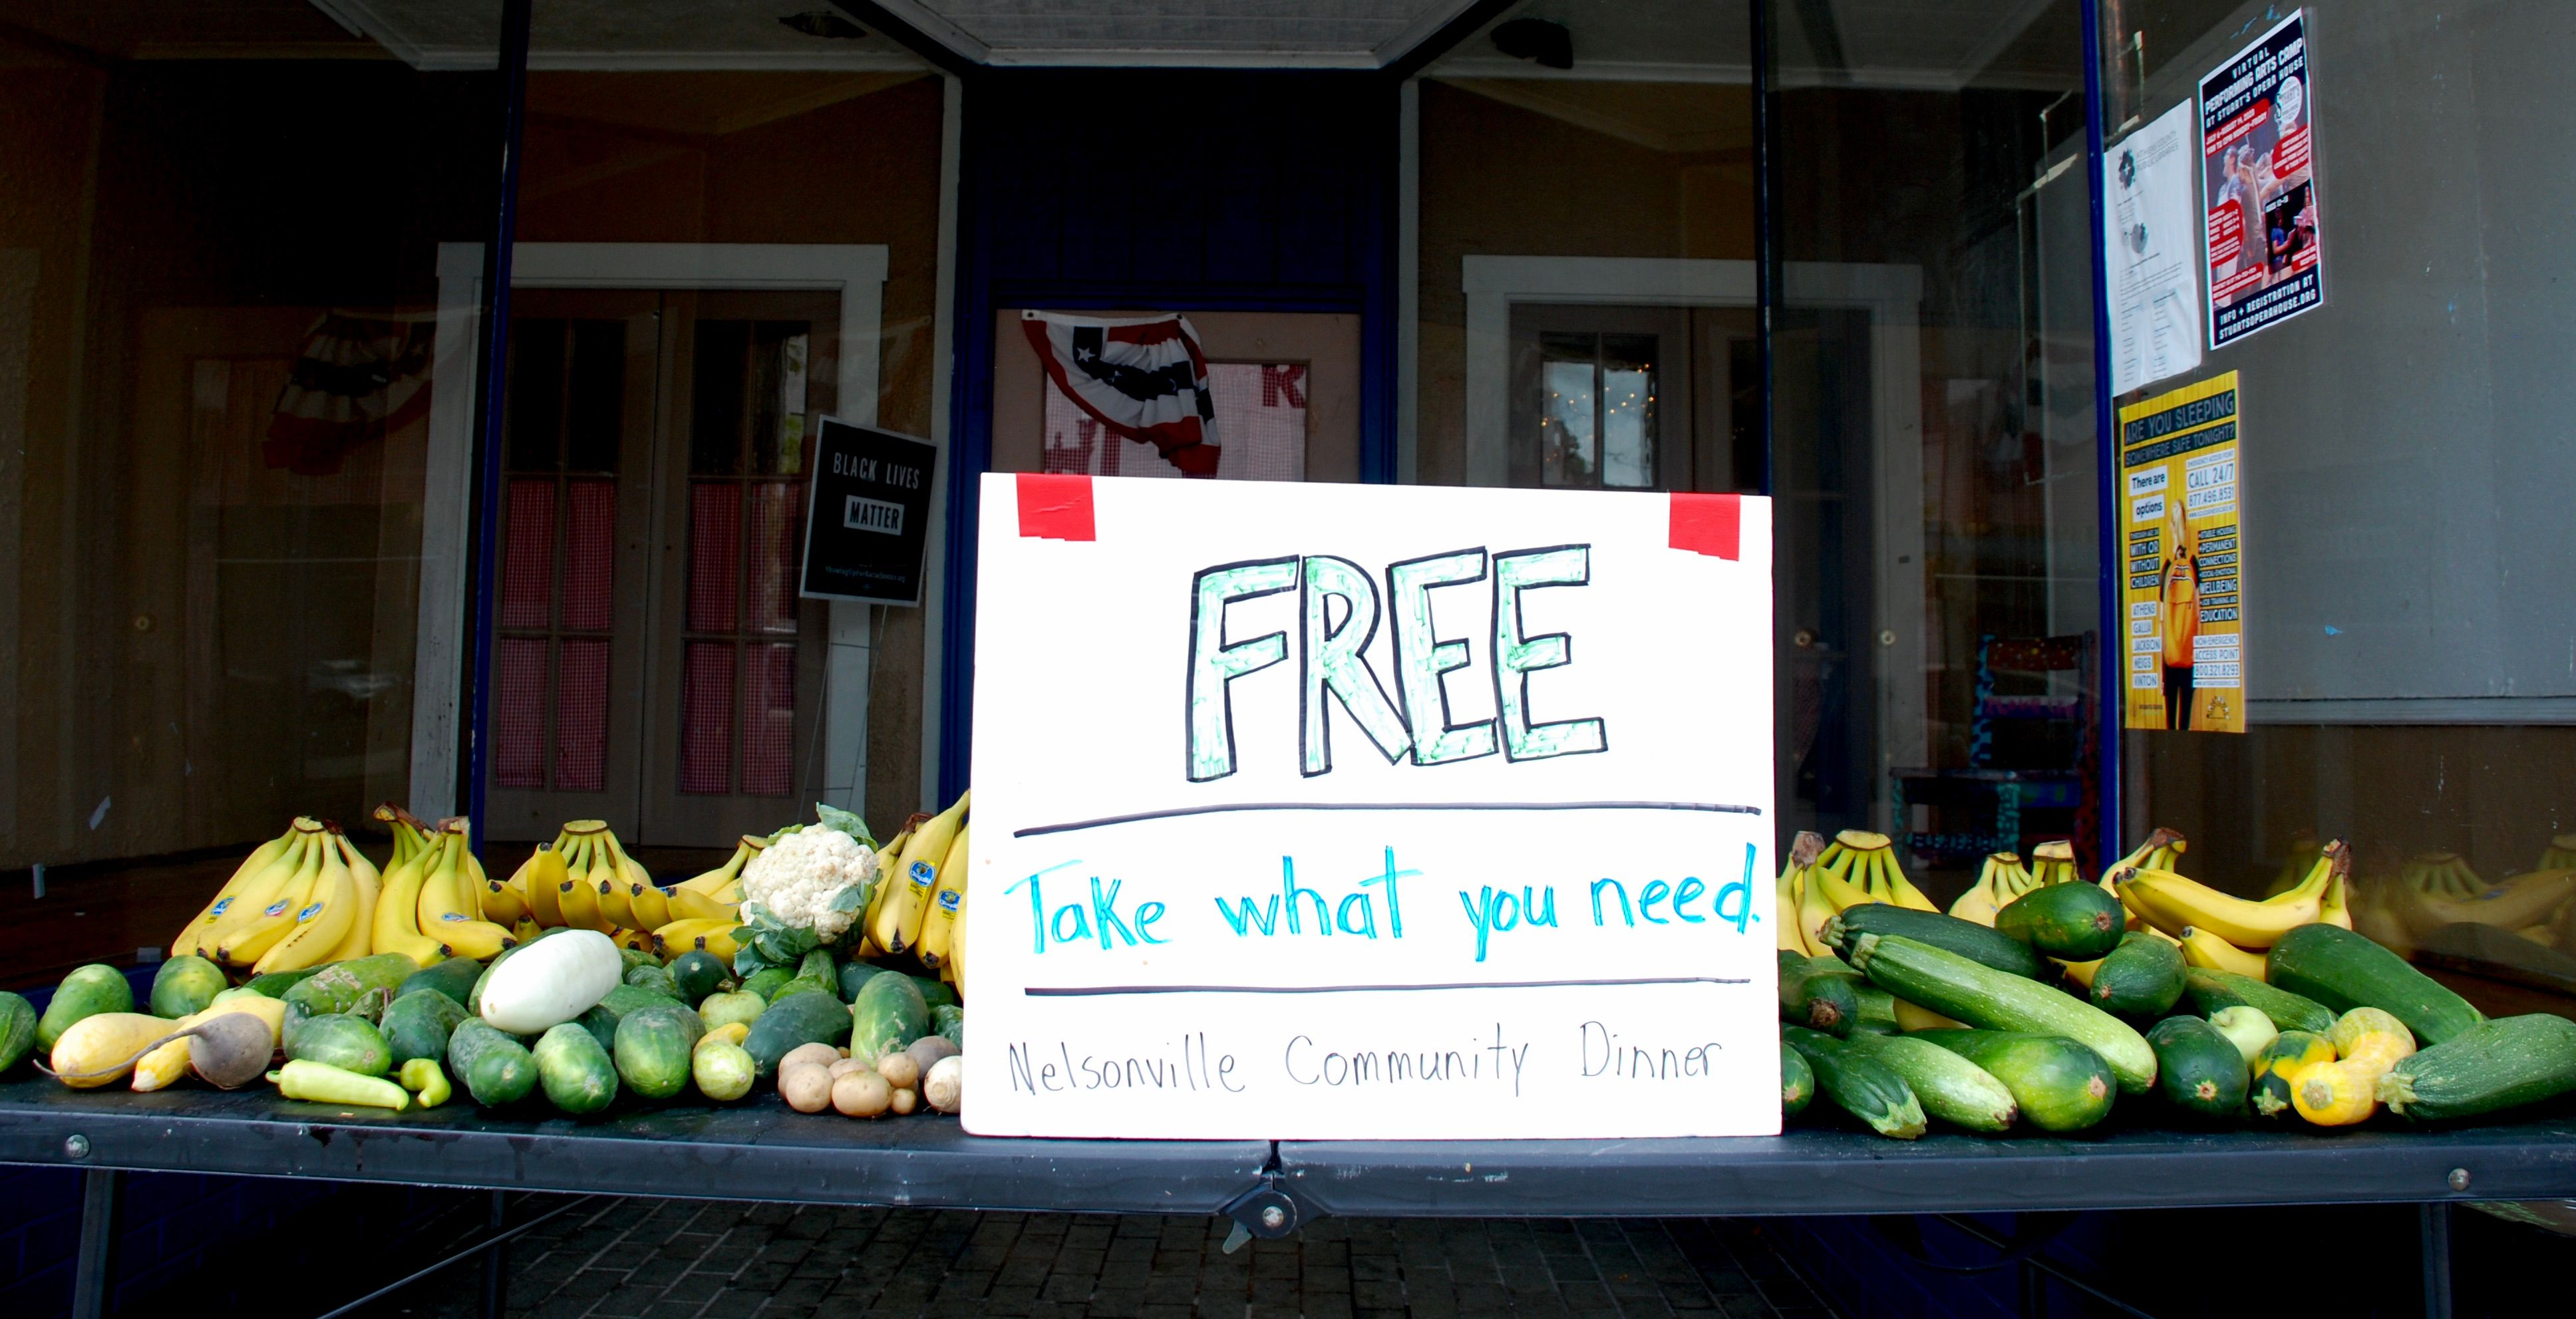 Live Healthy Contributes Fruit to Free Goods Table